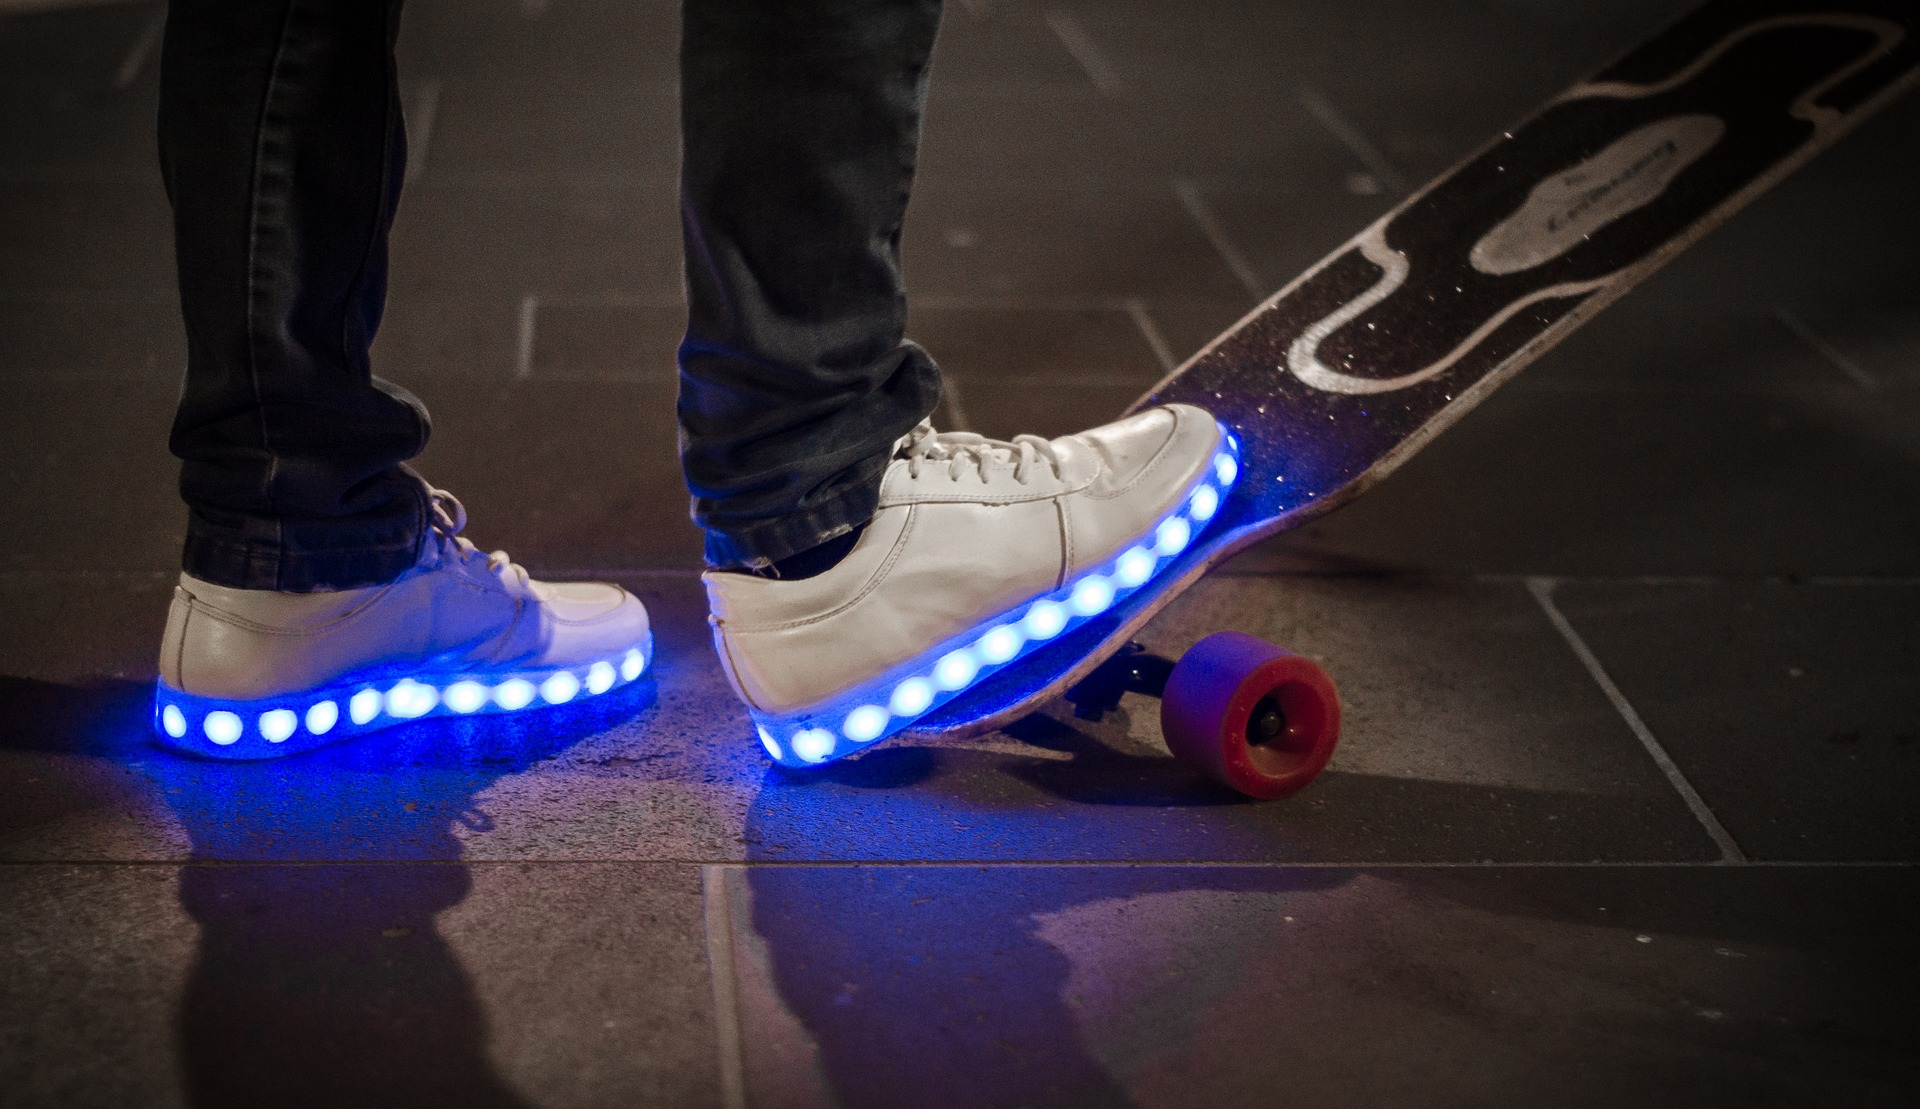 What are the light up shoes called